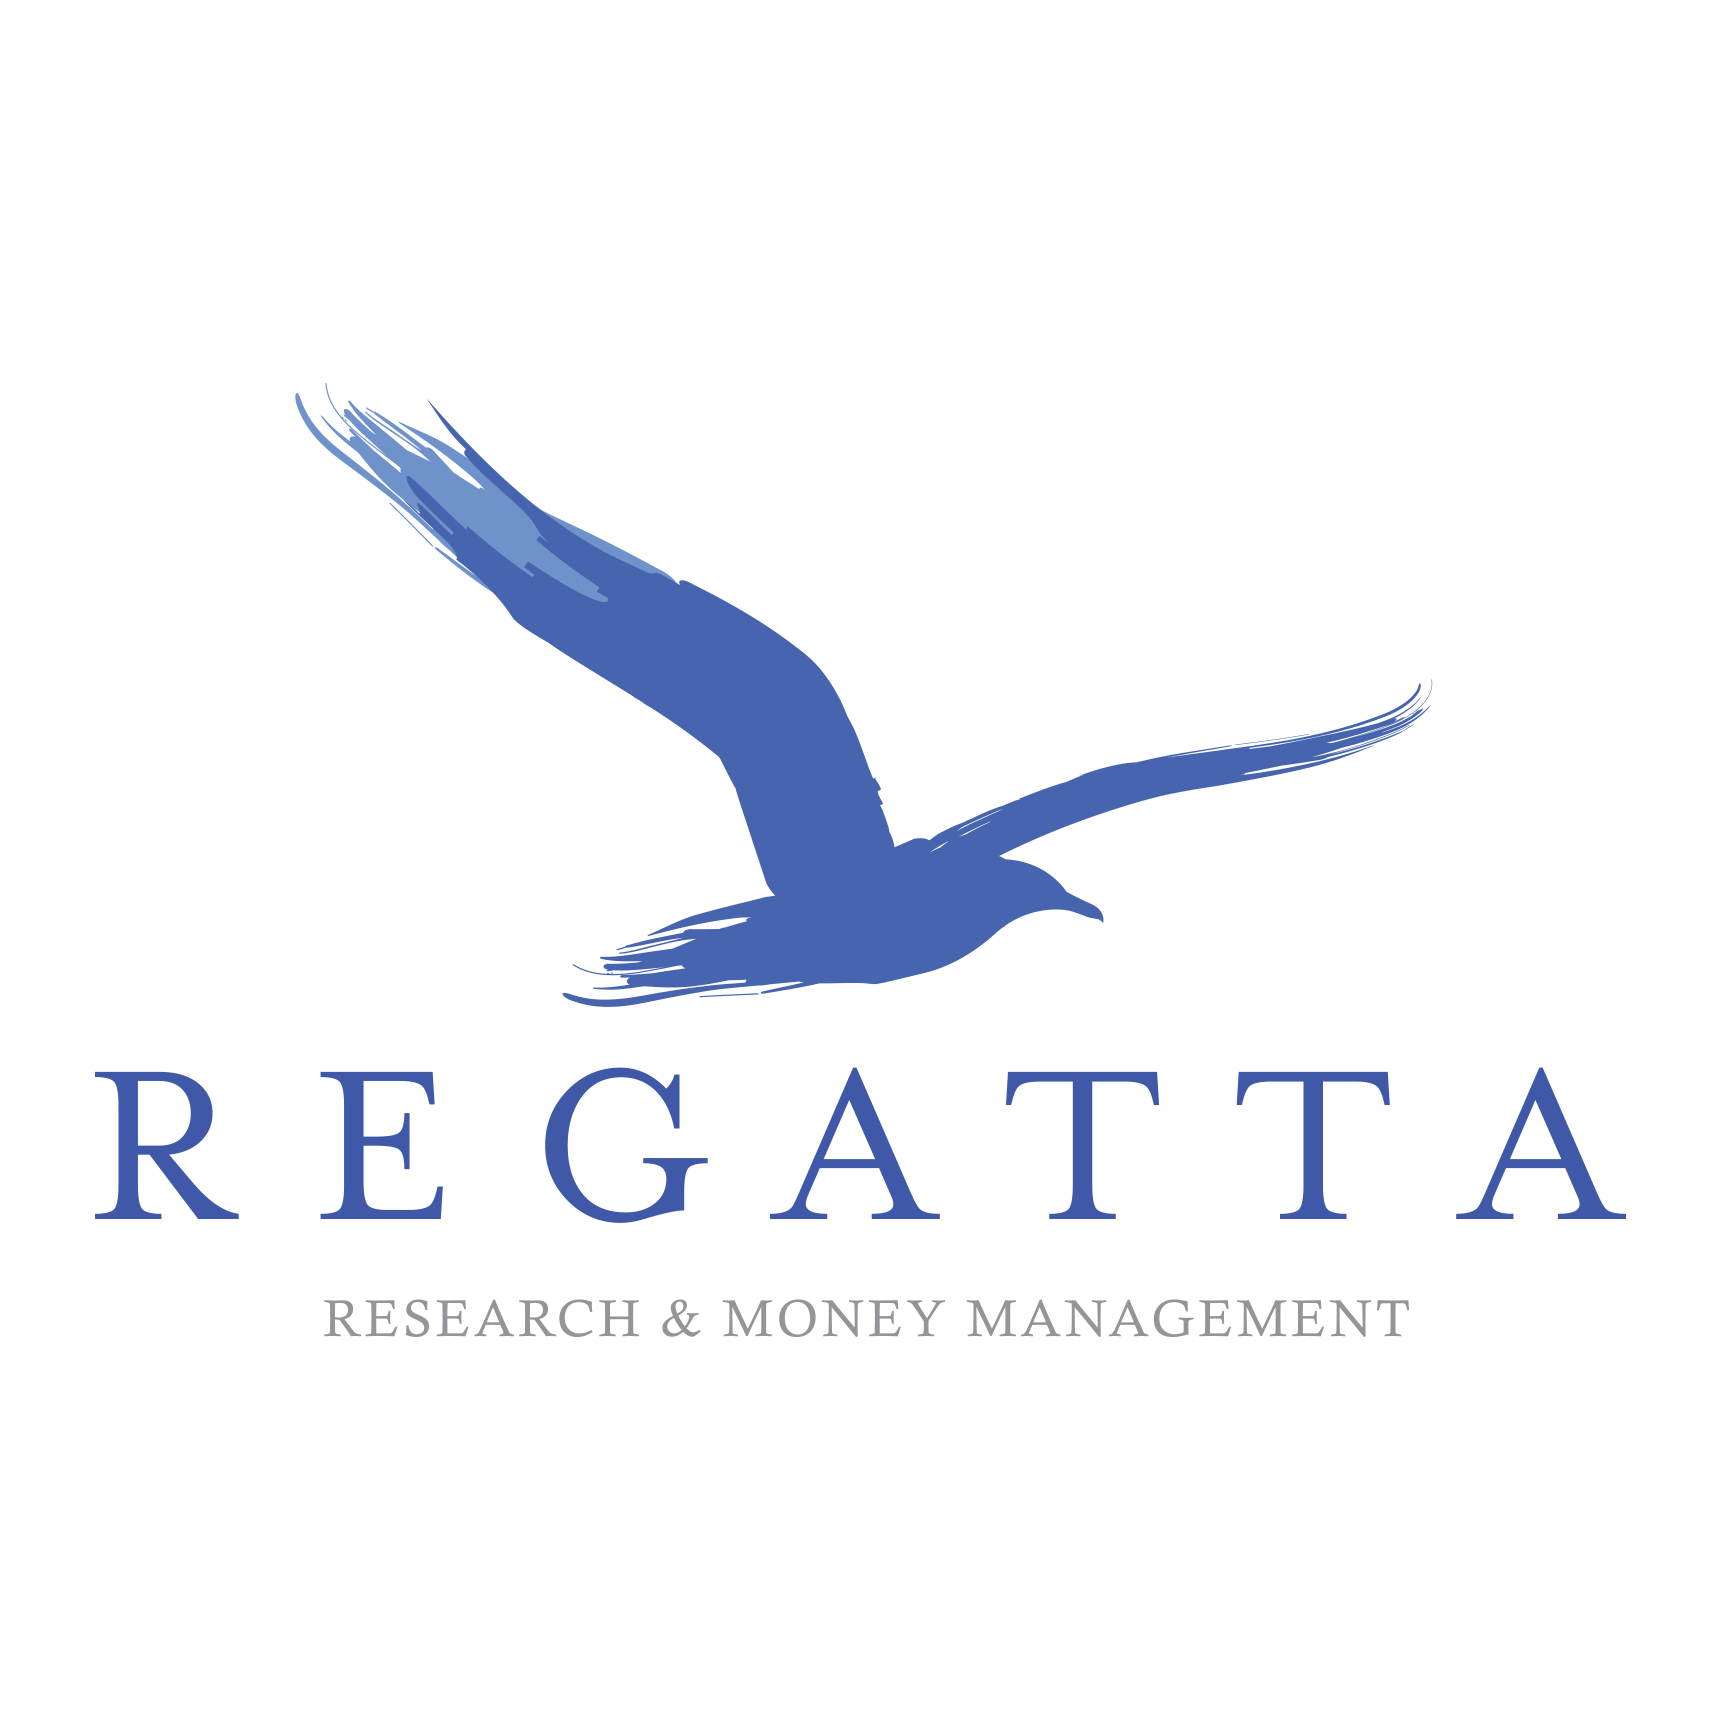 Regatta Research & Money Management LLC